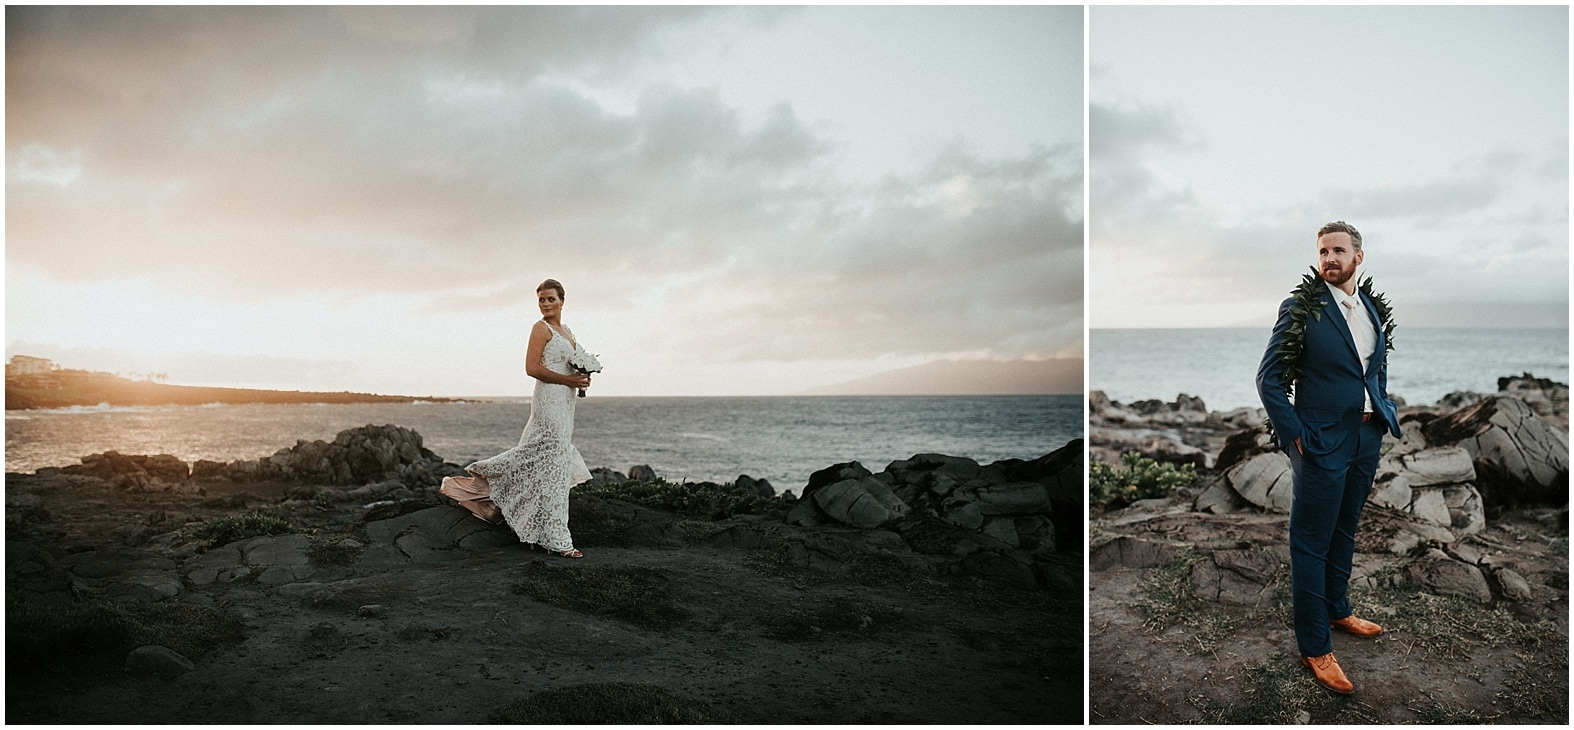 kapalua wedding photography19